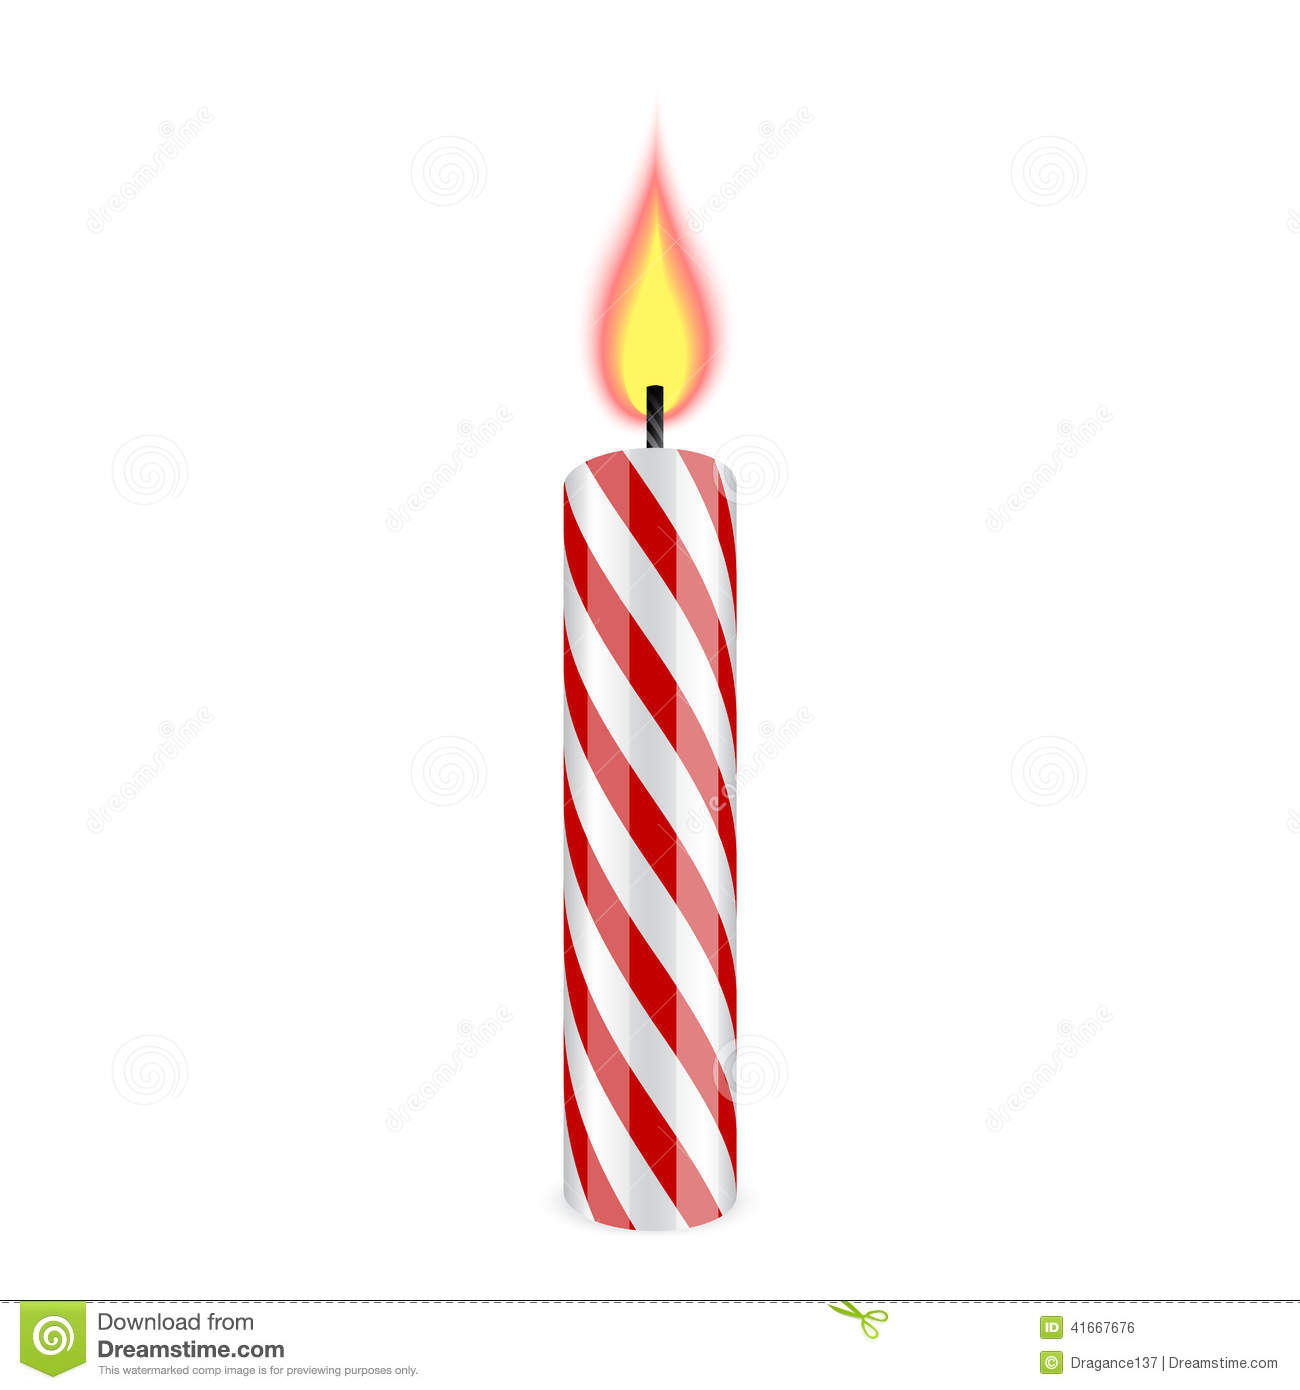 image of a birthday candle ; birthday-candle-red-white-burning-41667676